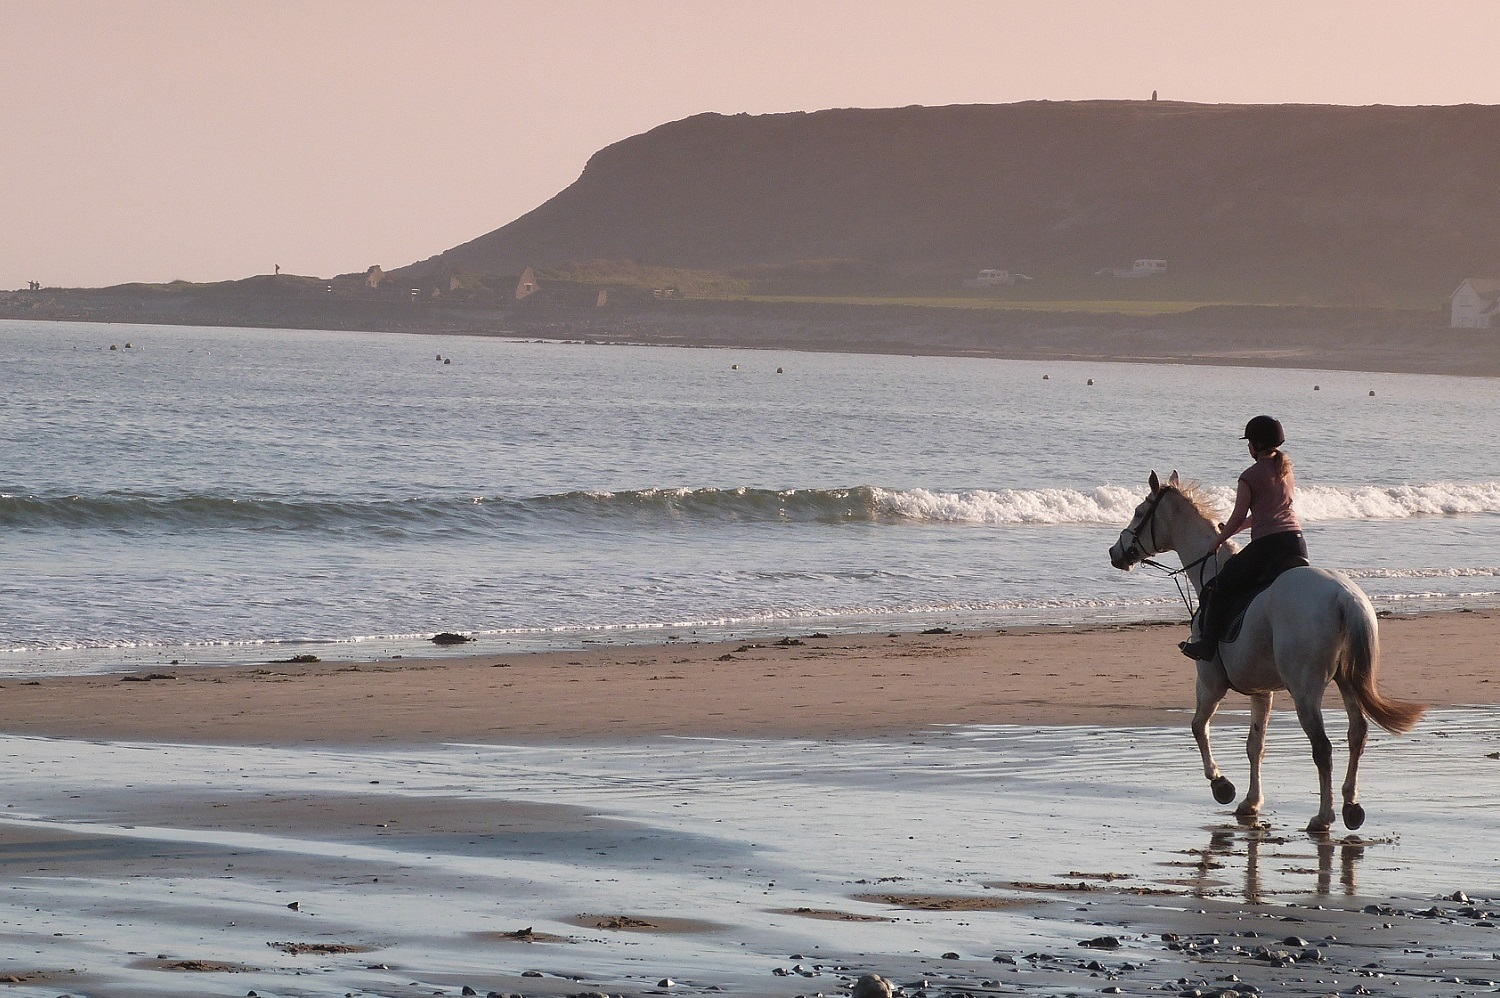 person riding a horse on a beach in wales